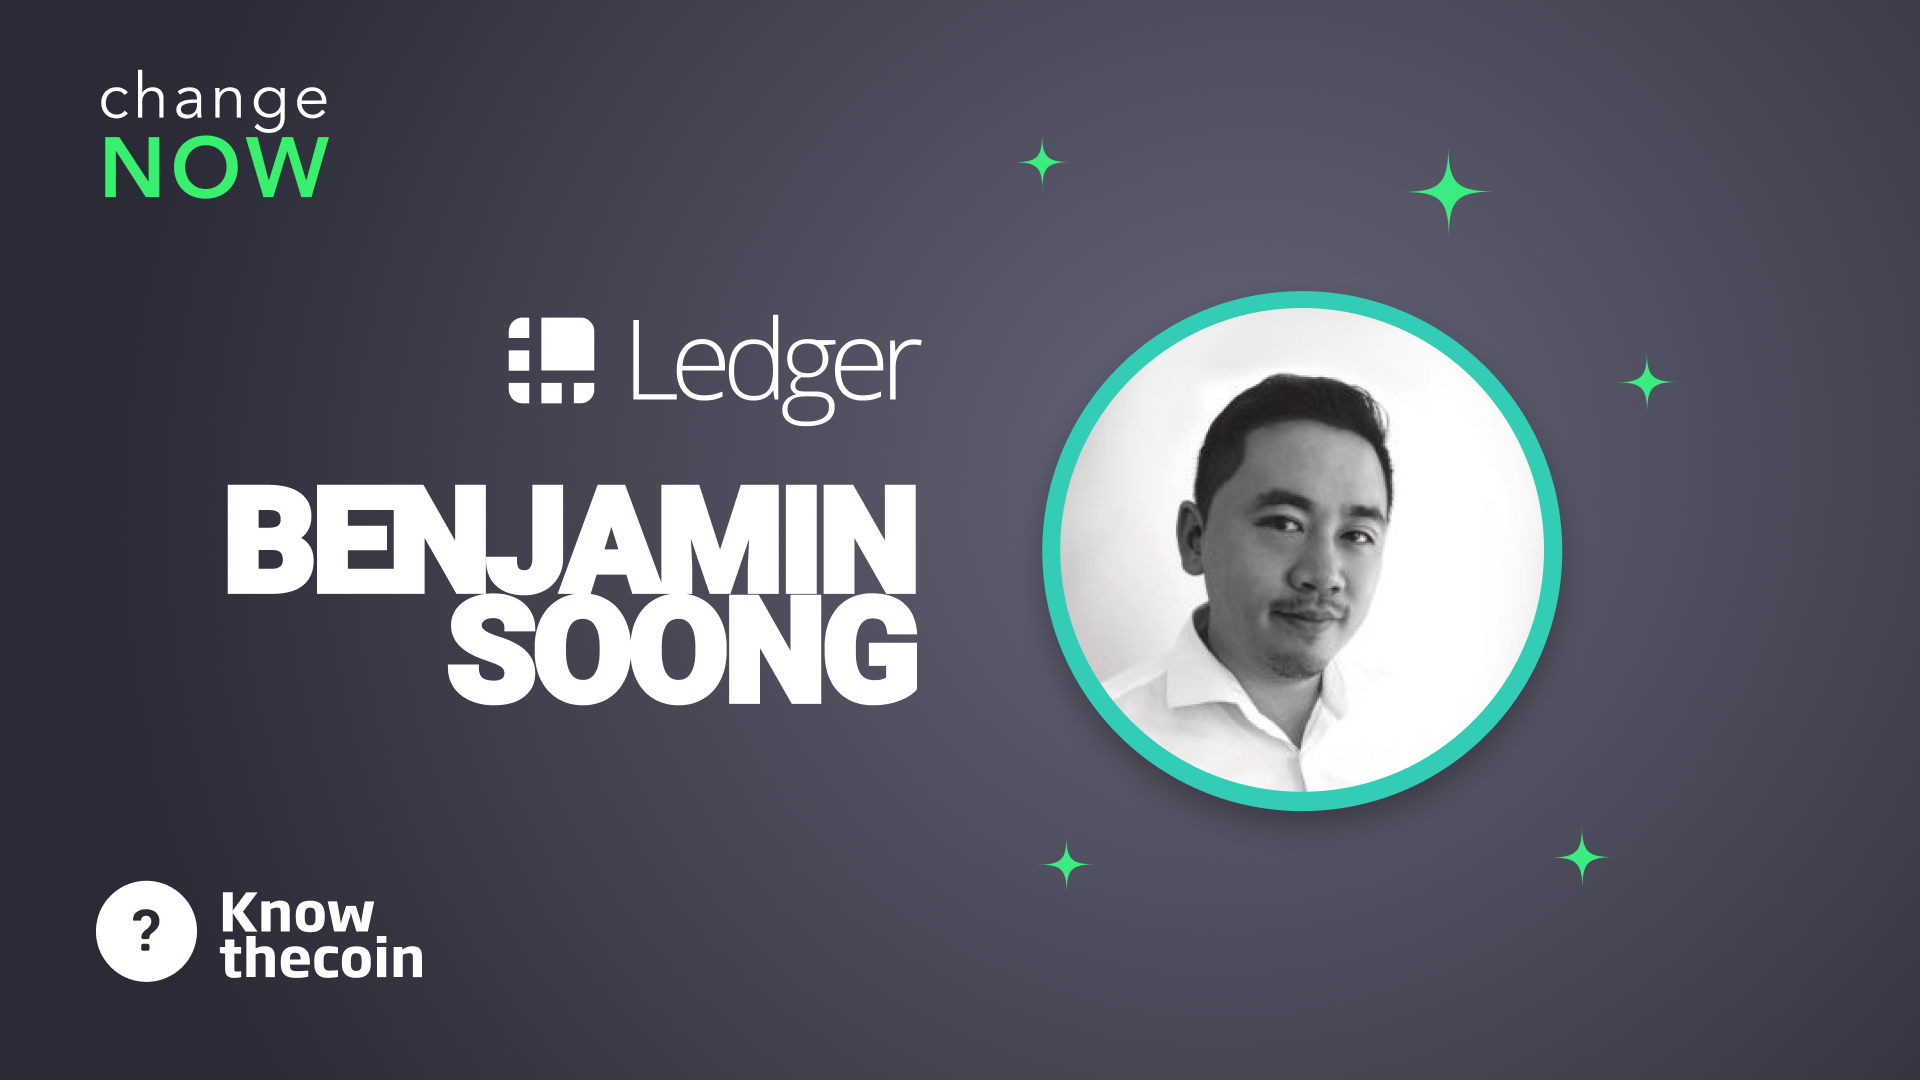 Know The Coin: Ledger's Benjamin Soong